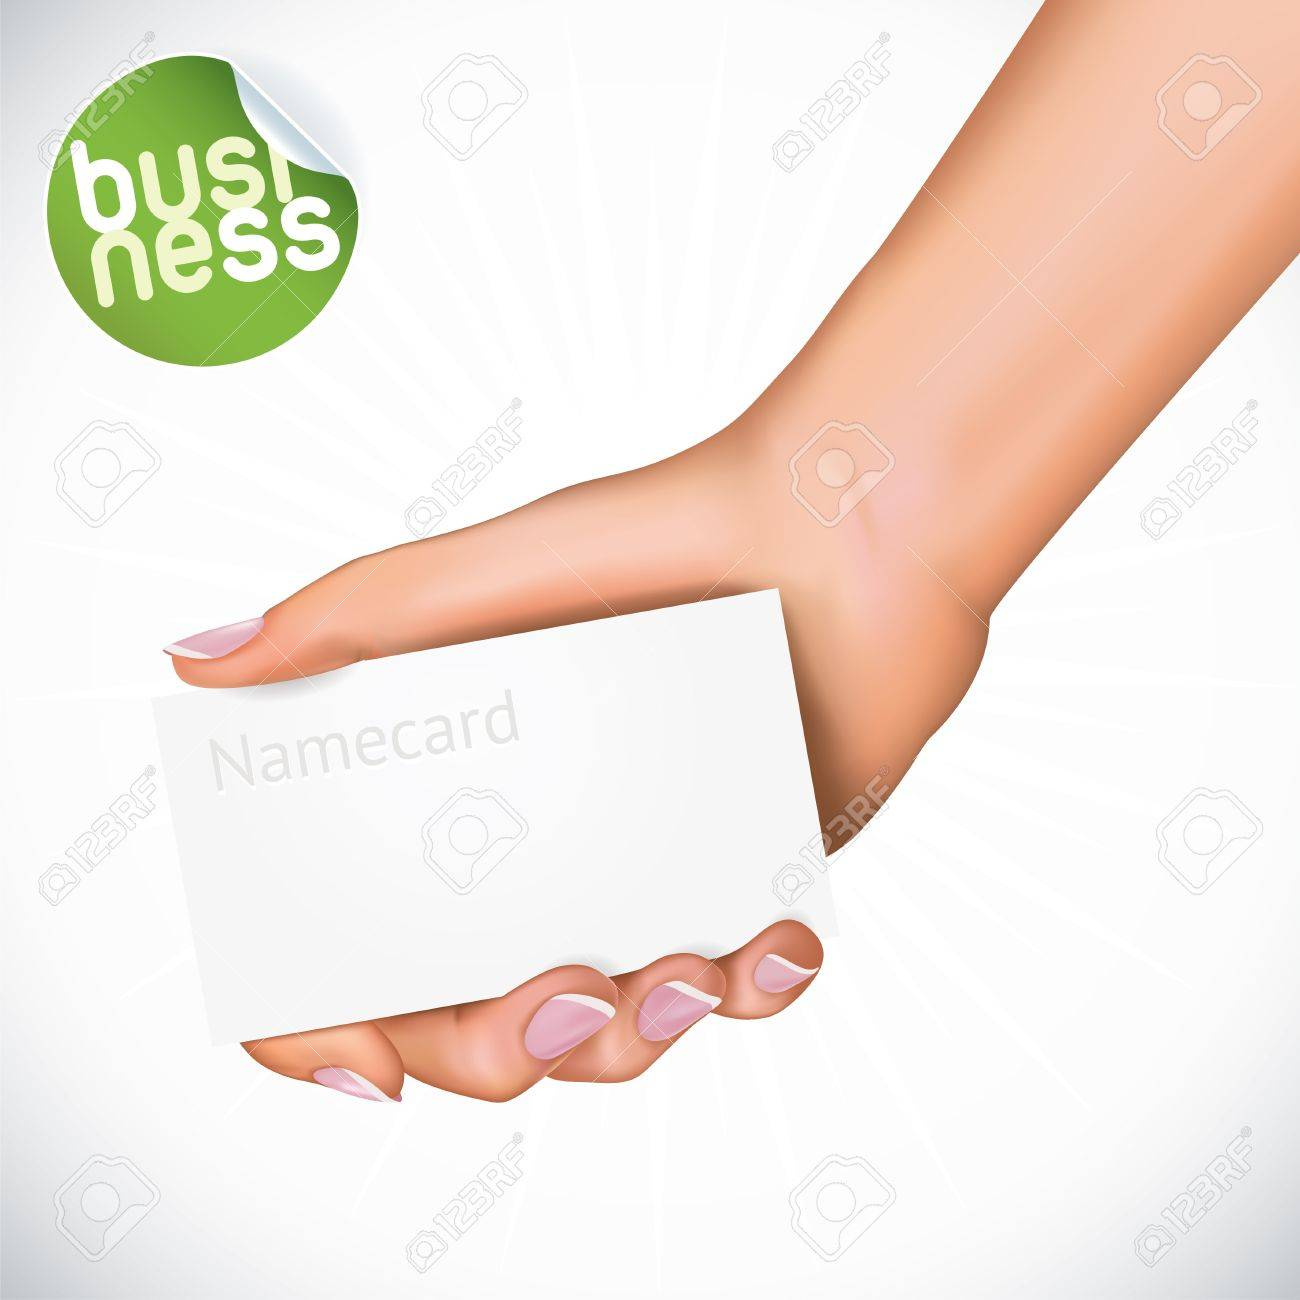 Vector Hand Holding Name Card